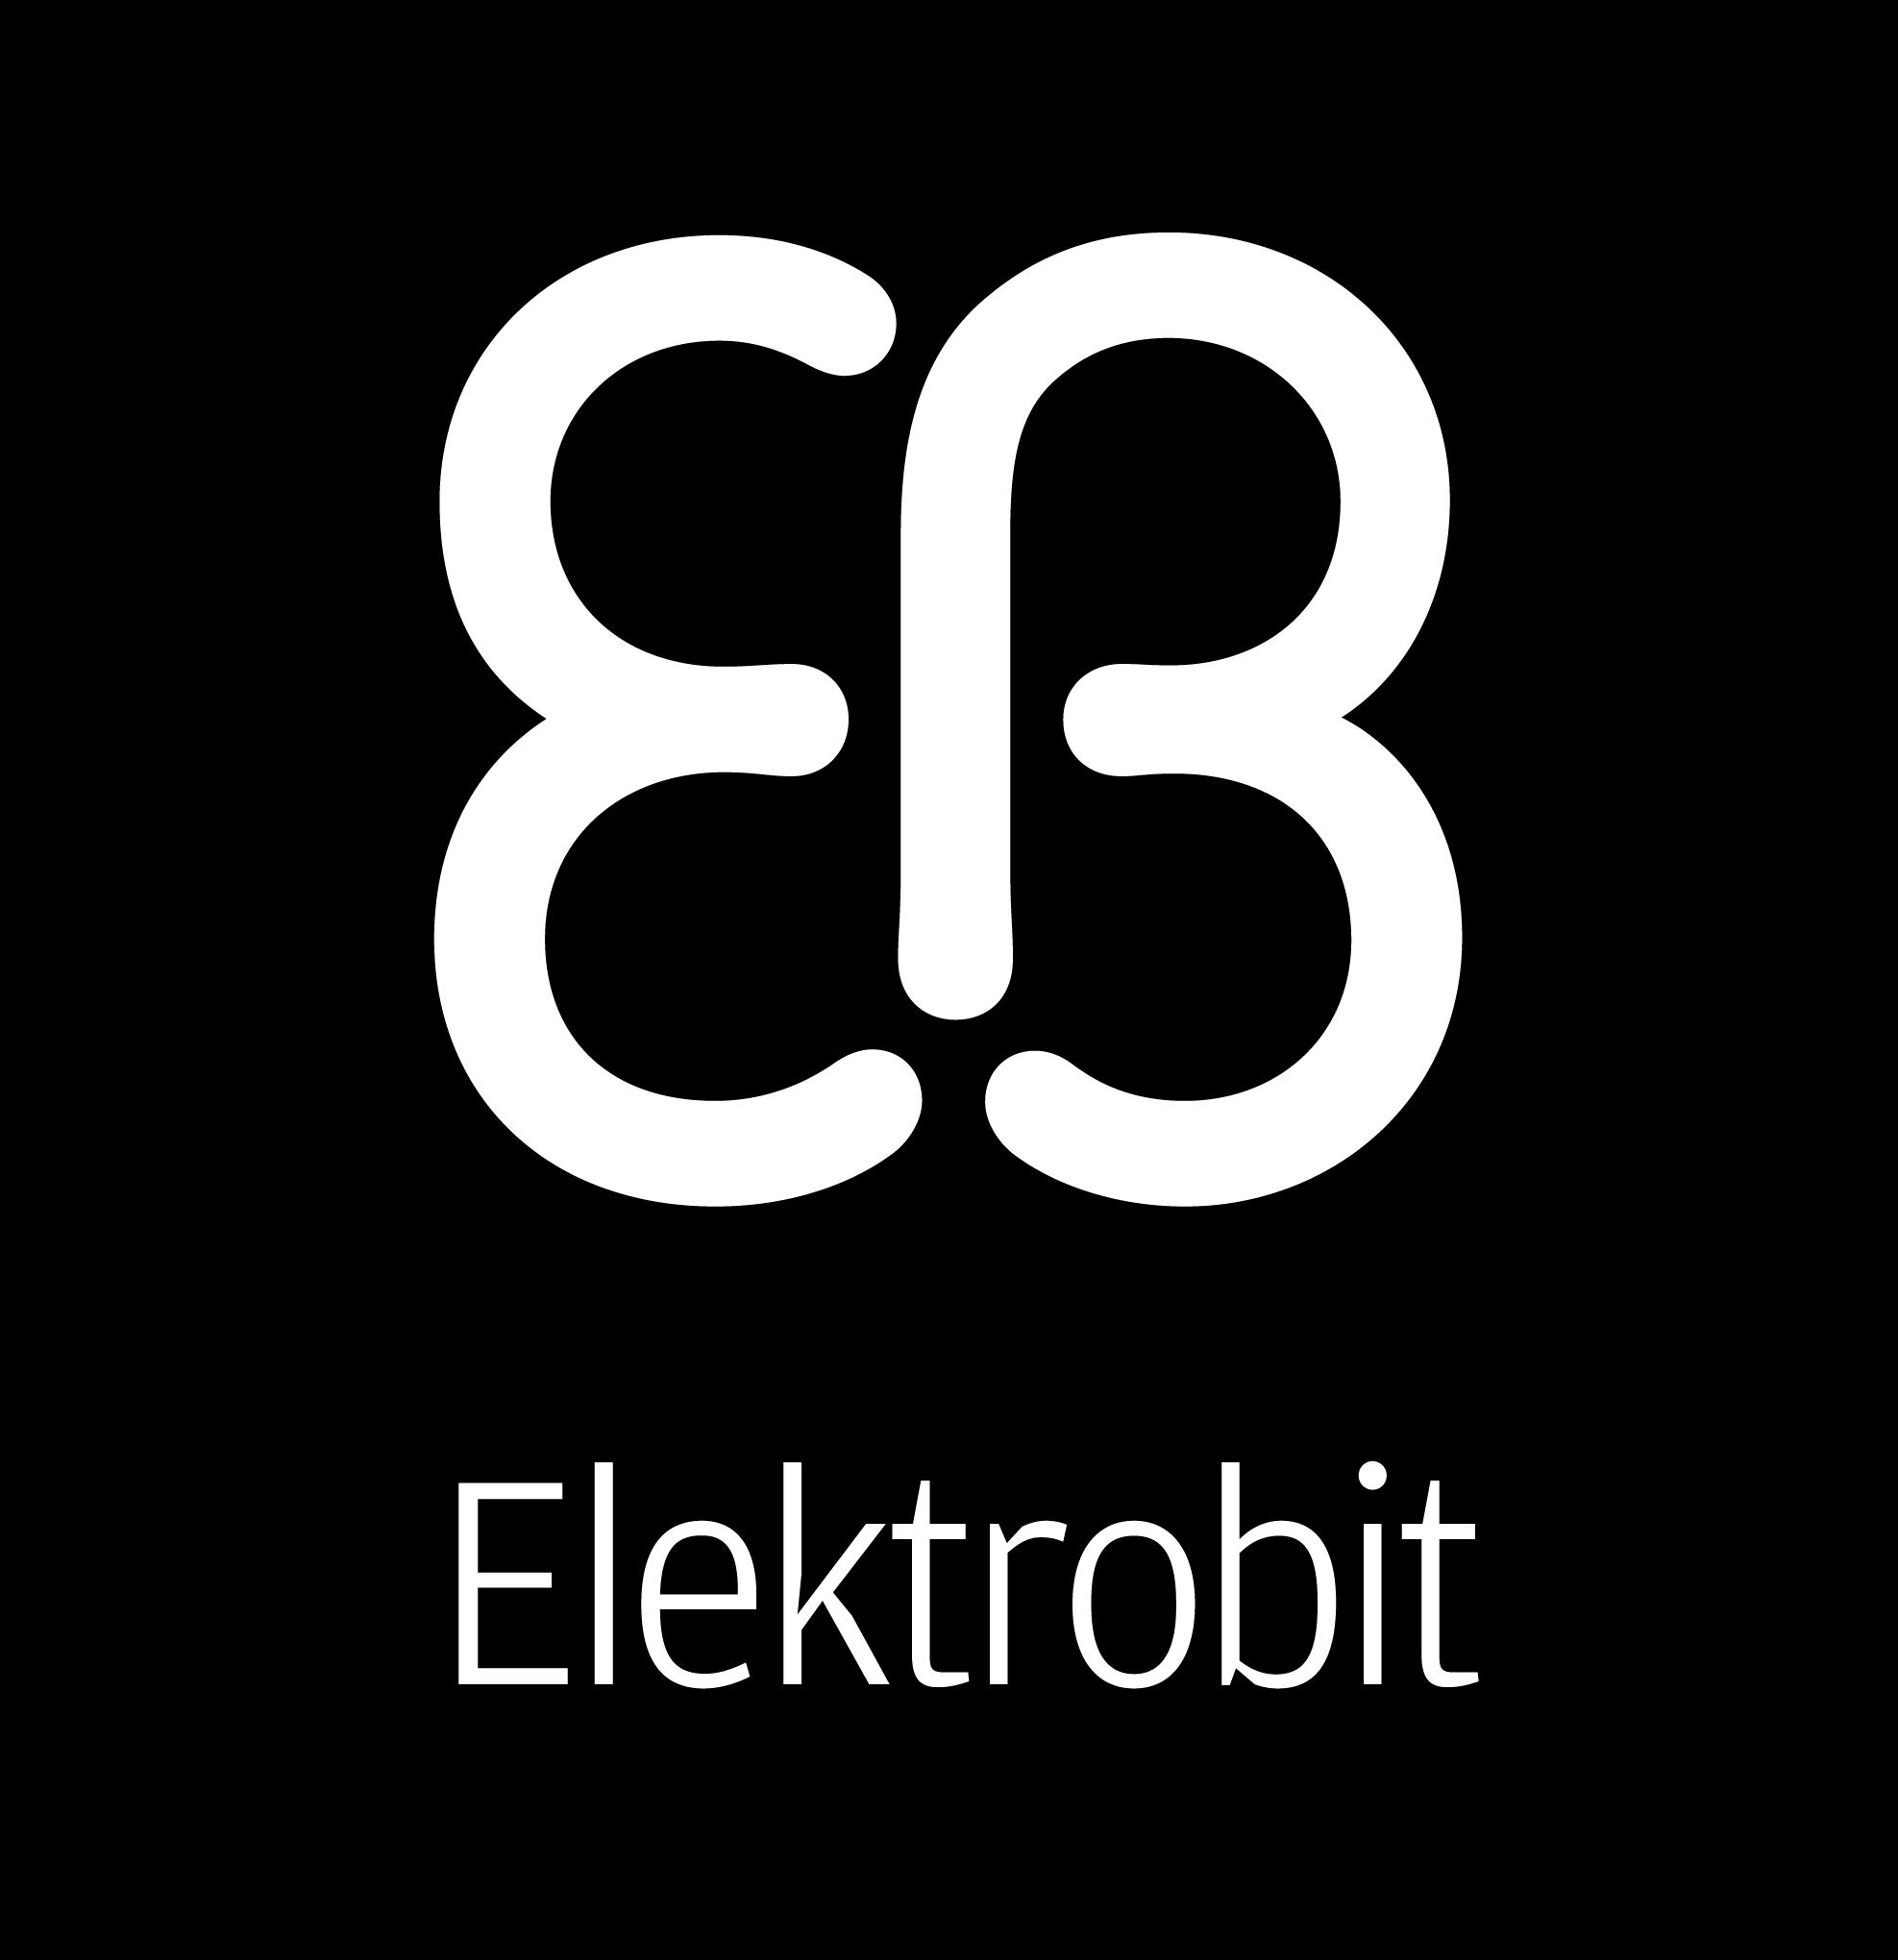 https://www.elektrobit.com/careers/elektrobit-finland/